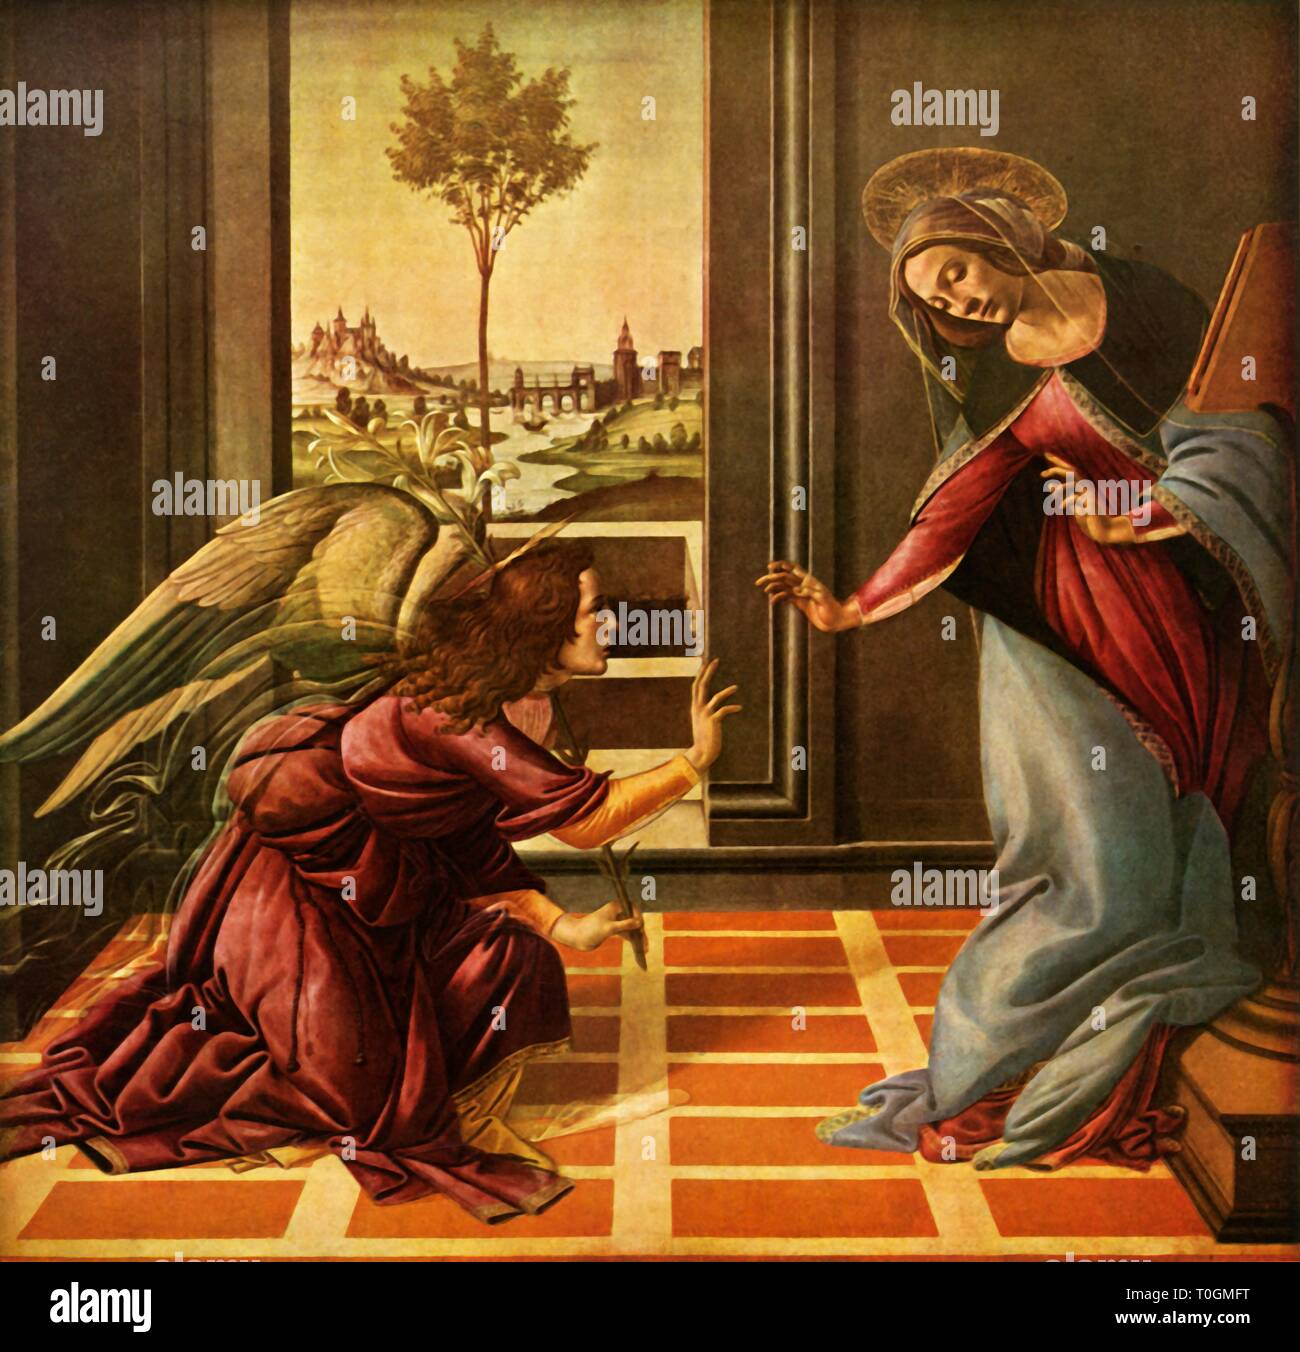 """'The Cestello Annunciation', 1489, (1937). The angel Gabriel, holding a stem of lilies, brings the Virgin Mary the news that God has chosen her to bear the Christ child. Painting in the Uffizi Gallery, Florence. From """"Sandro Botticelli"""" by Lionello Venturi. [George Allen & Unwin Ltd, London, 1937] - Stock Image"""